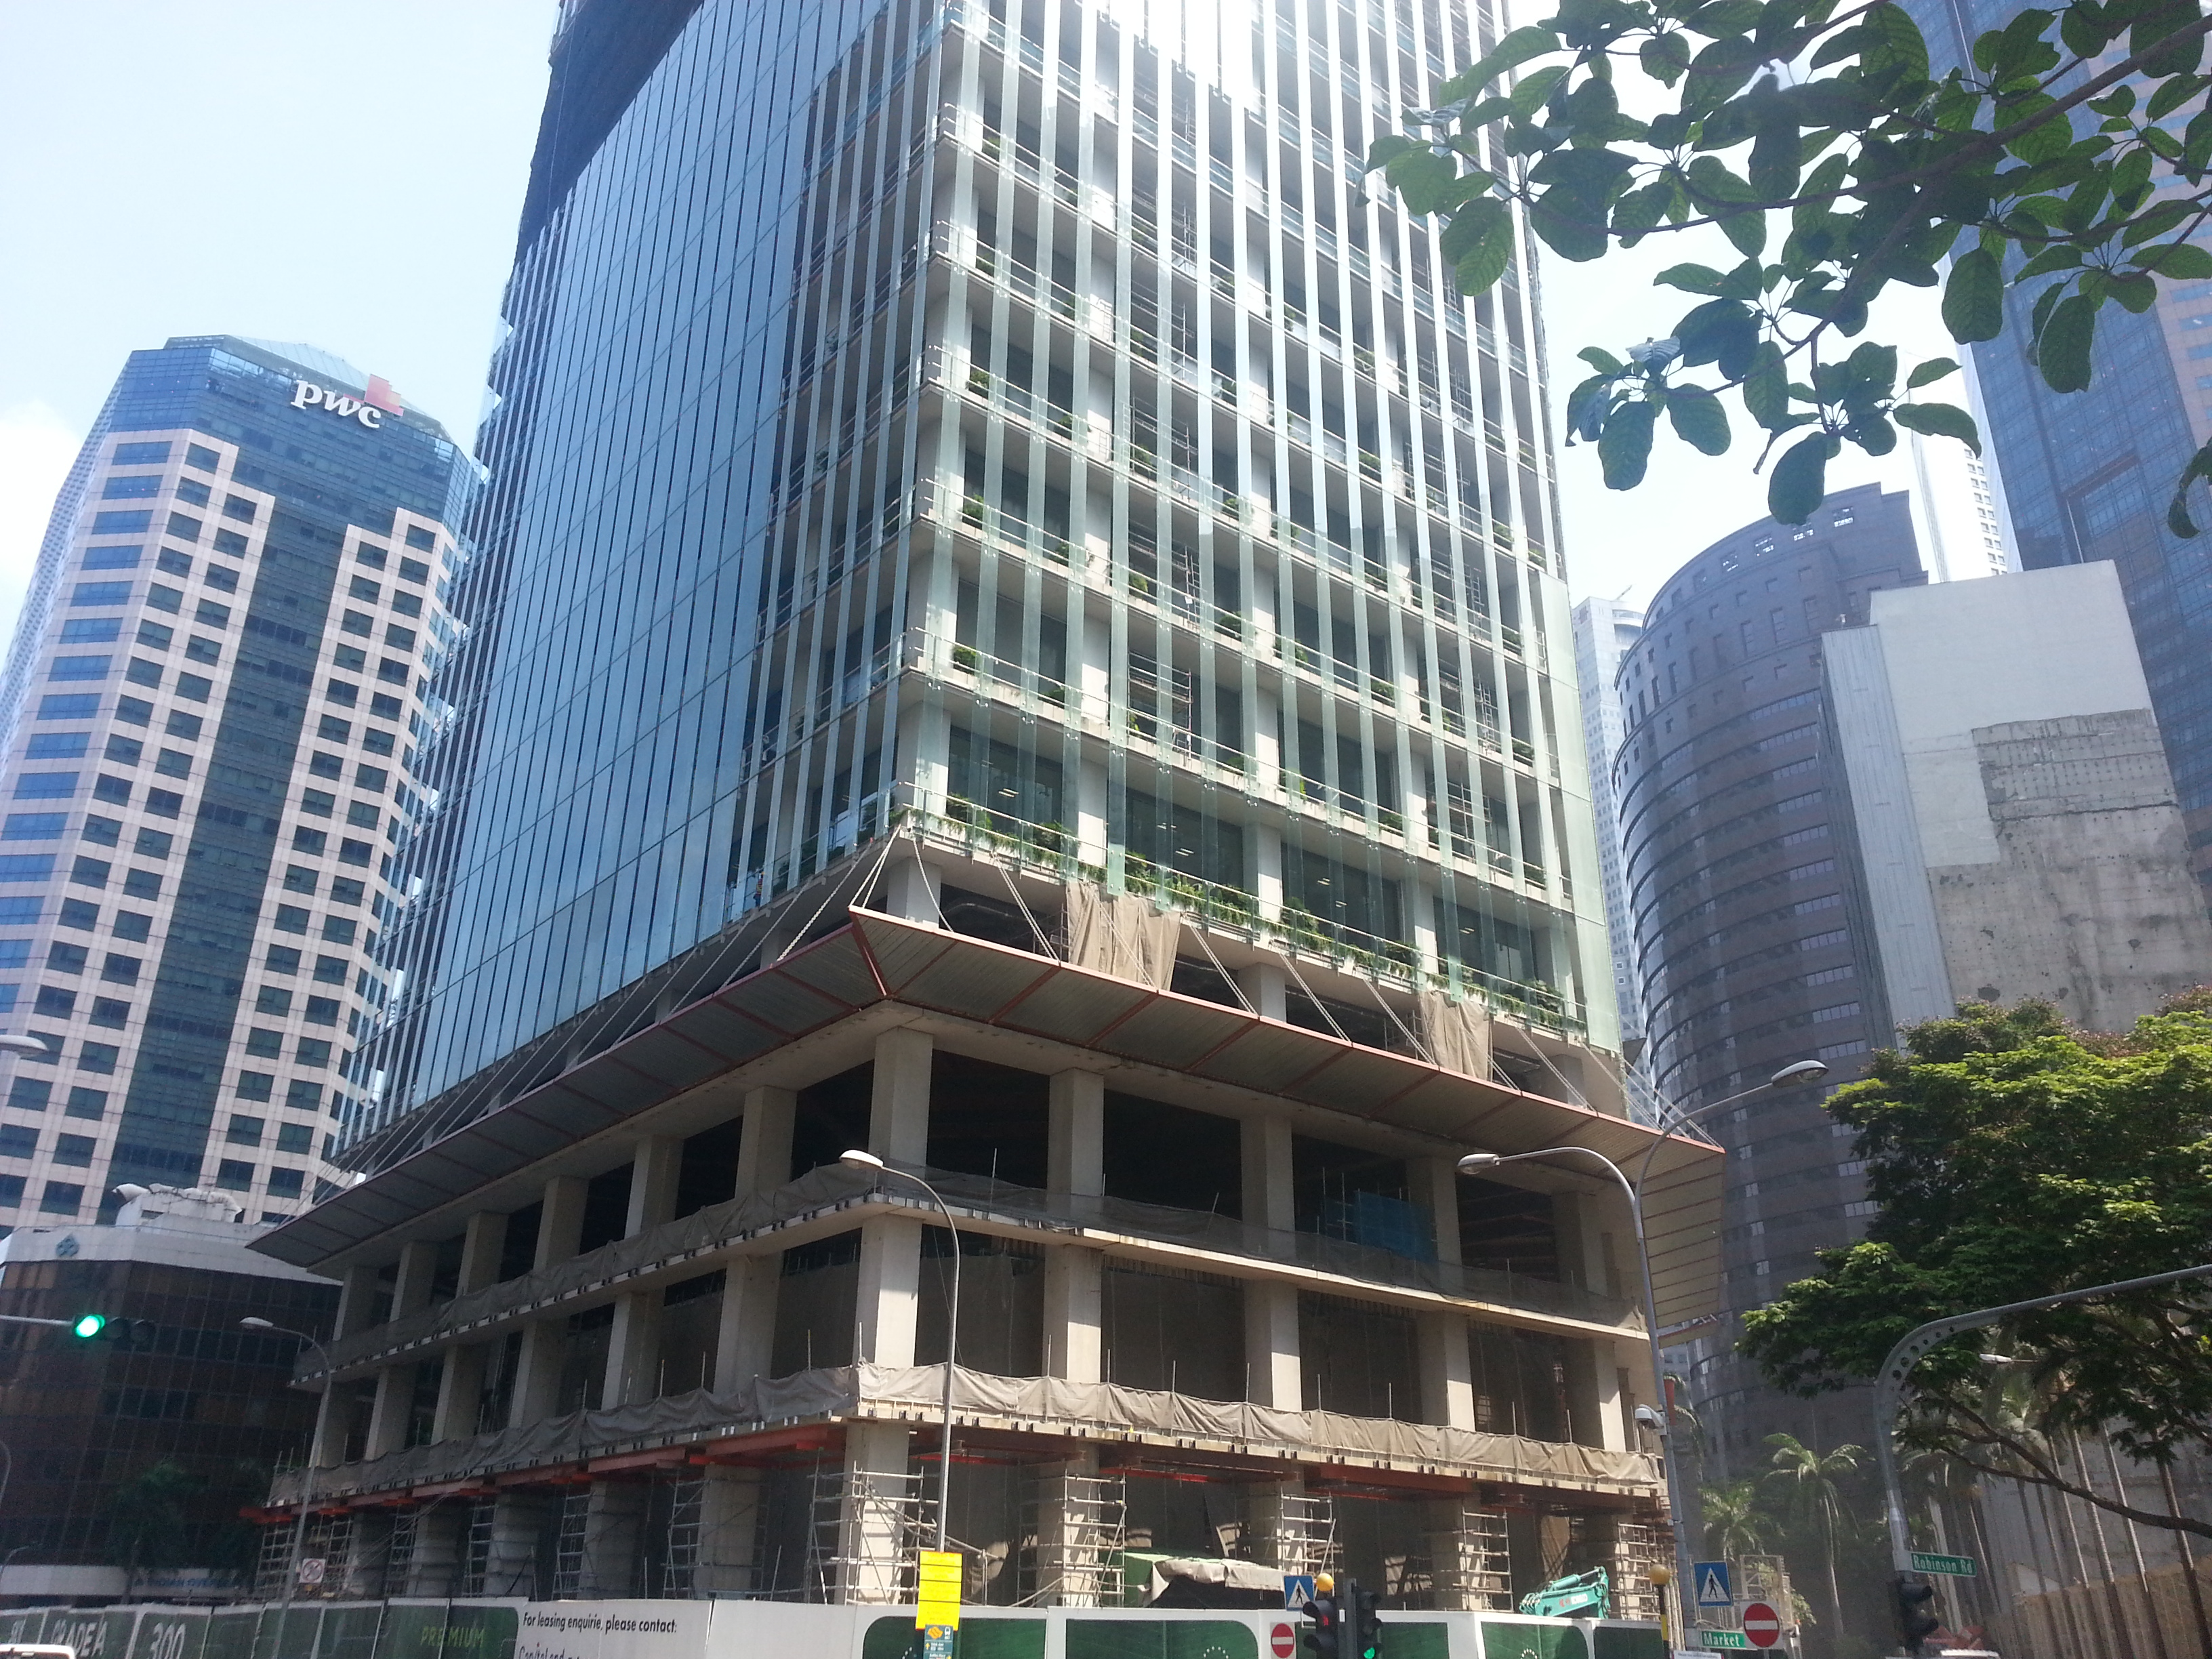 CapitaCommercial Trust's property, CapitaGreen in the heart of Singapore's CBD.